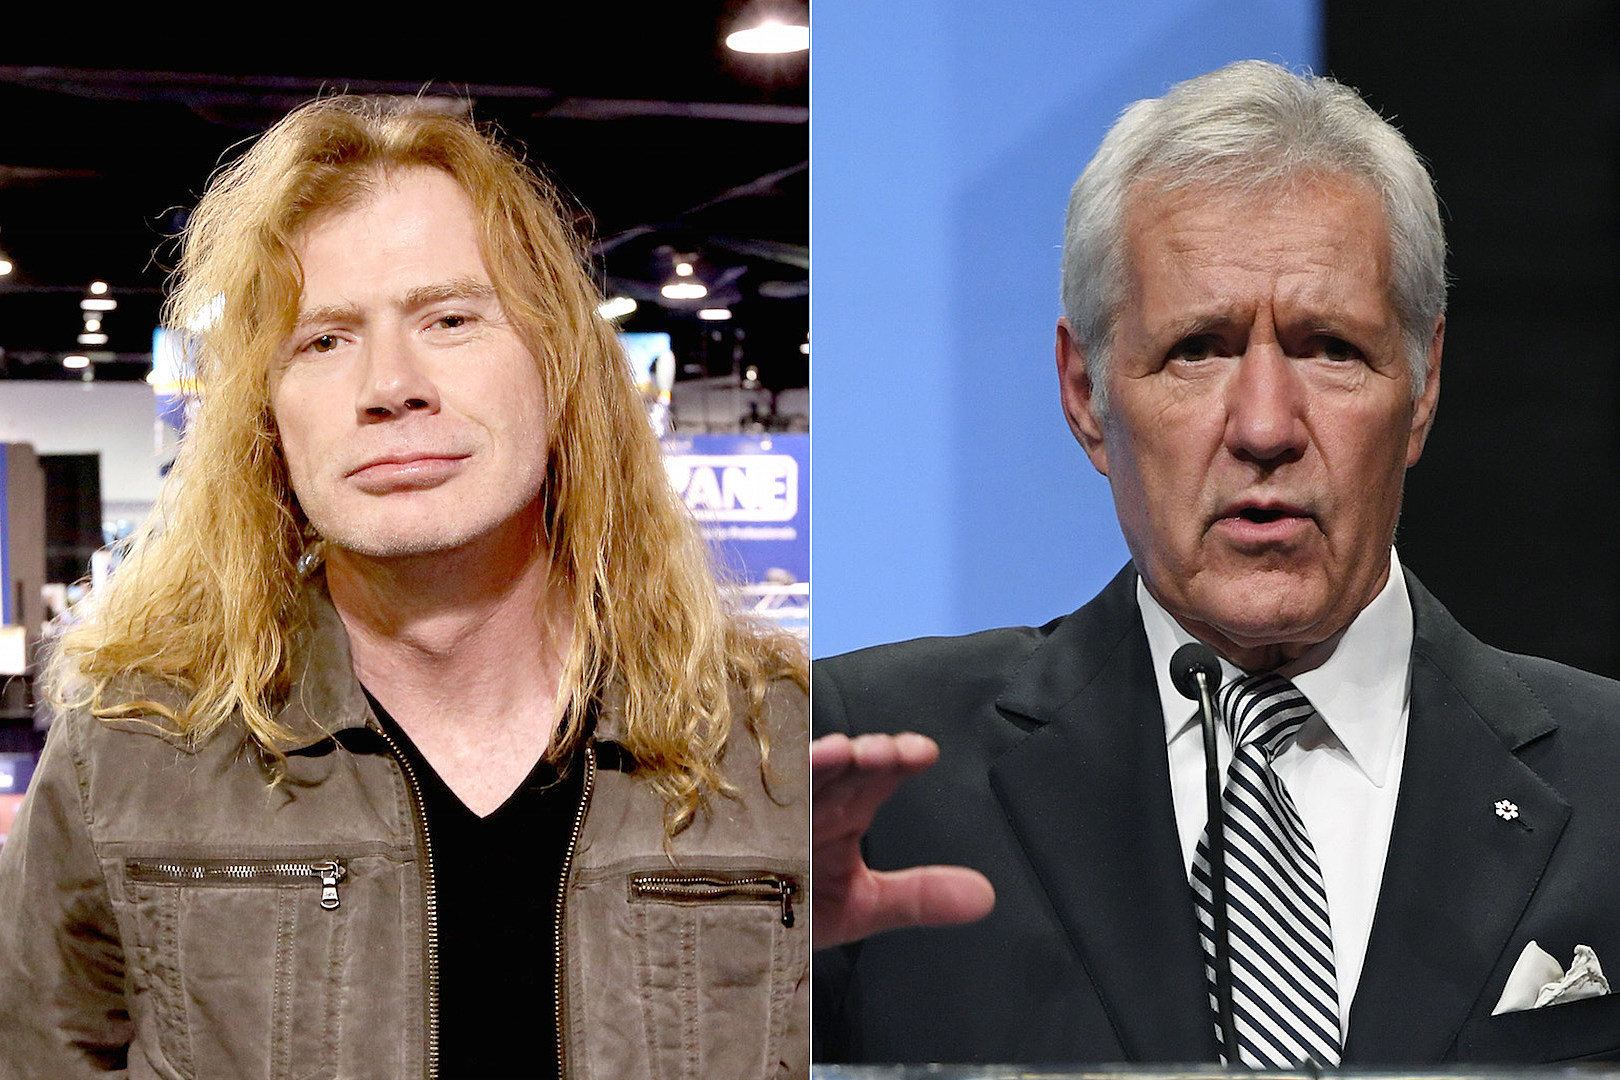 Megadeth Featured as Answer on 'Jeopardy'